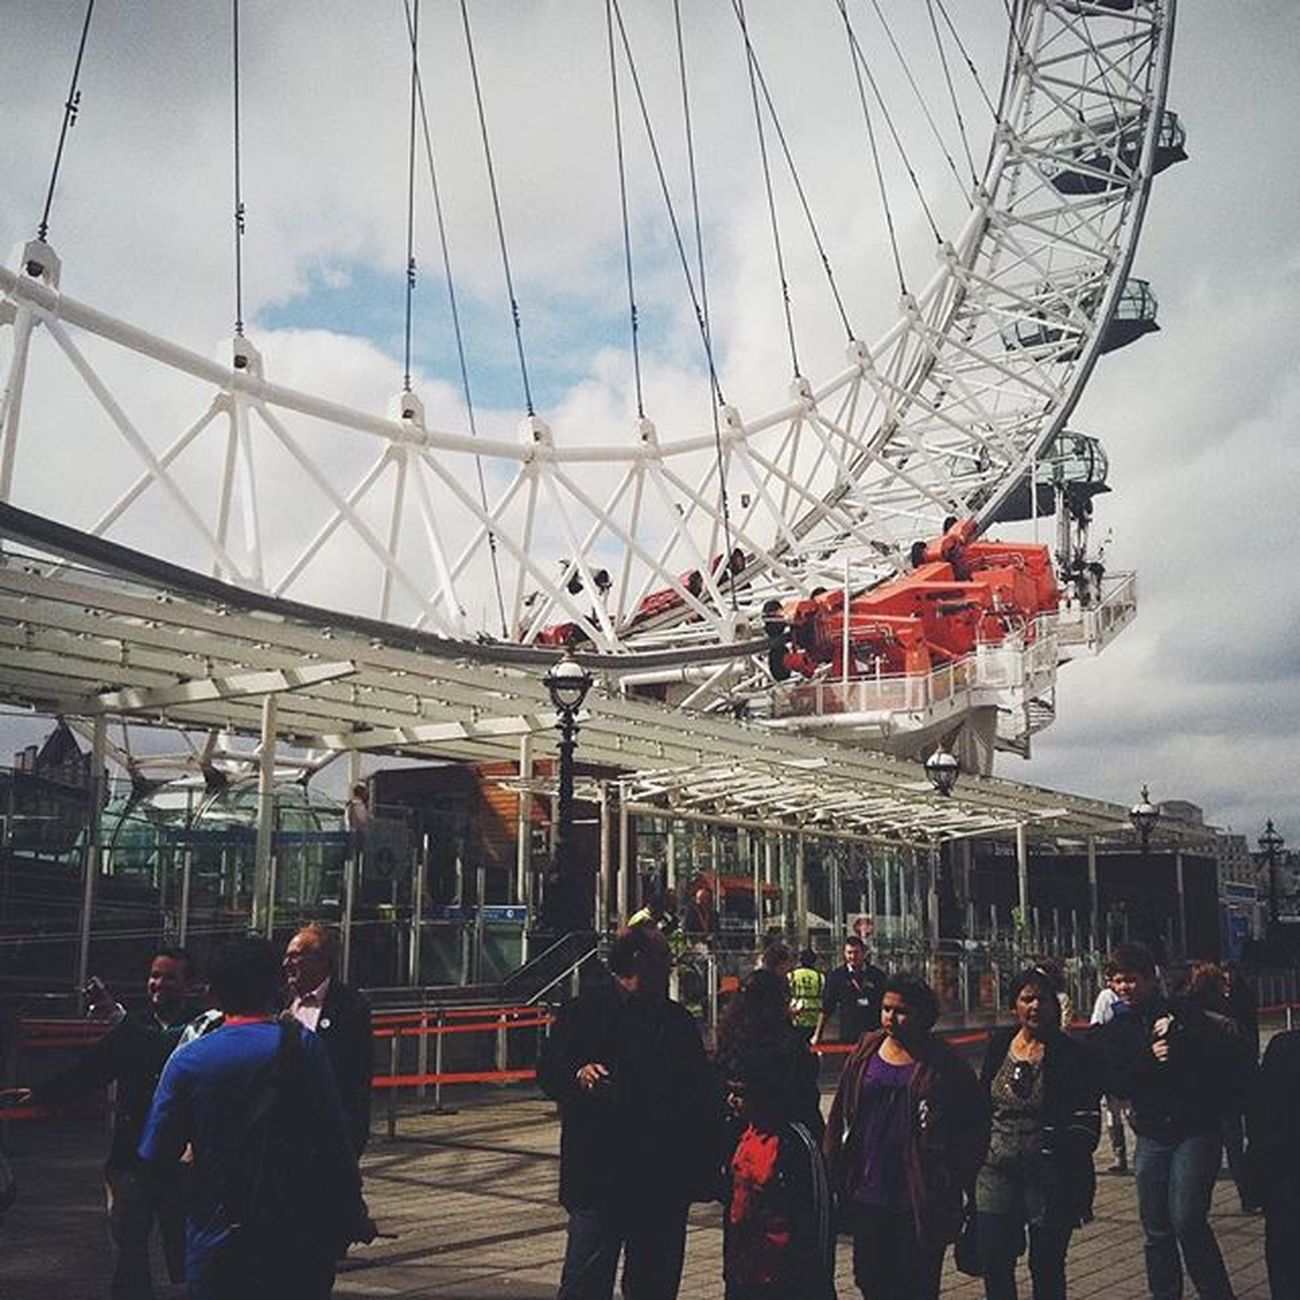 TBT  to when I was in London boarding the Eye! London Uk Photooftheday LondonEye Travel Citylife Explore Adventures Awesome Thamesriver